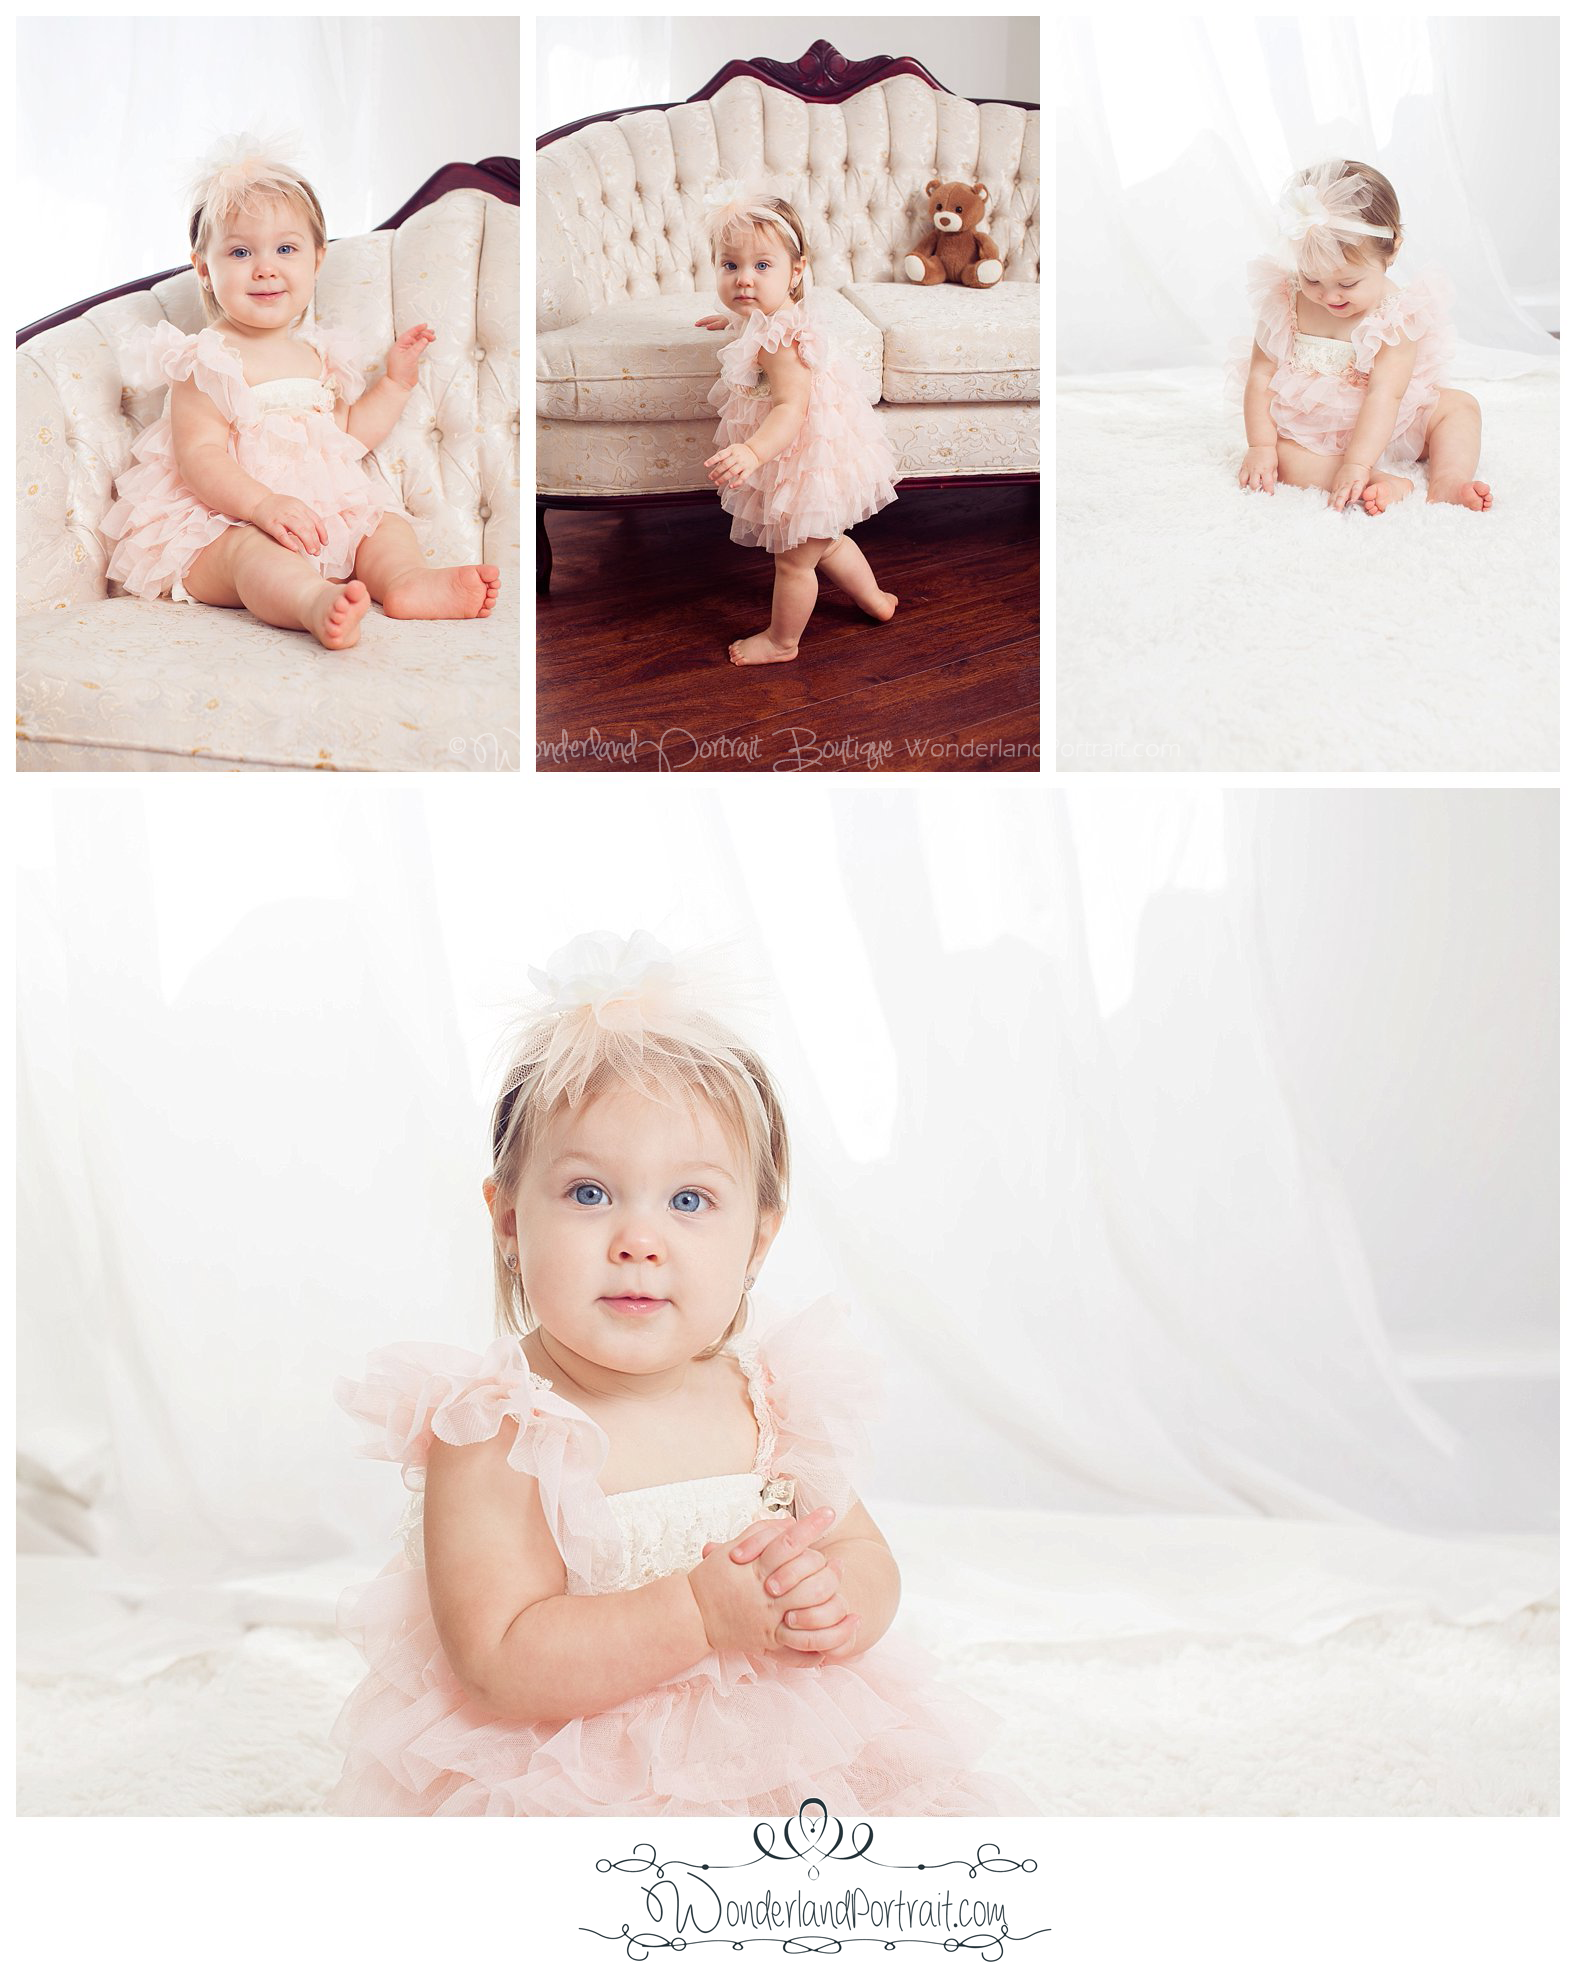 Bucks County Cake Smash & First Birthday Photographer www.WonderlandPortrait.com Wonderland Portrait Boutique Feasterville PA